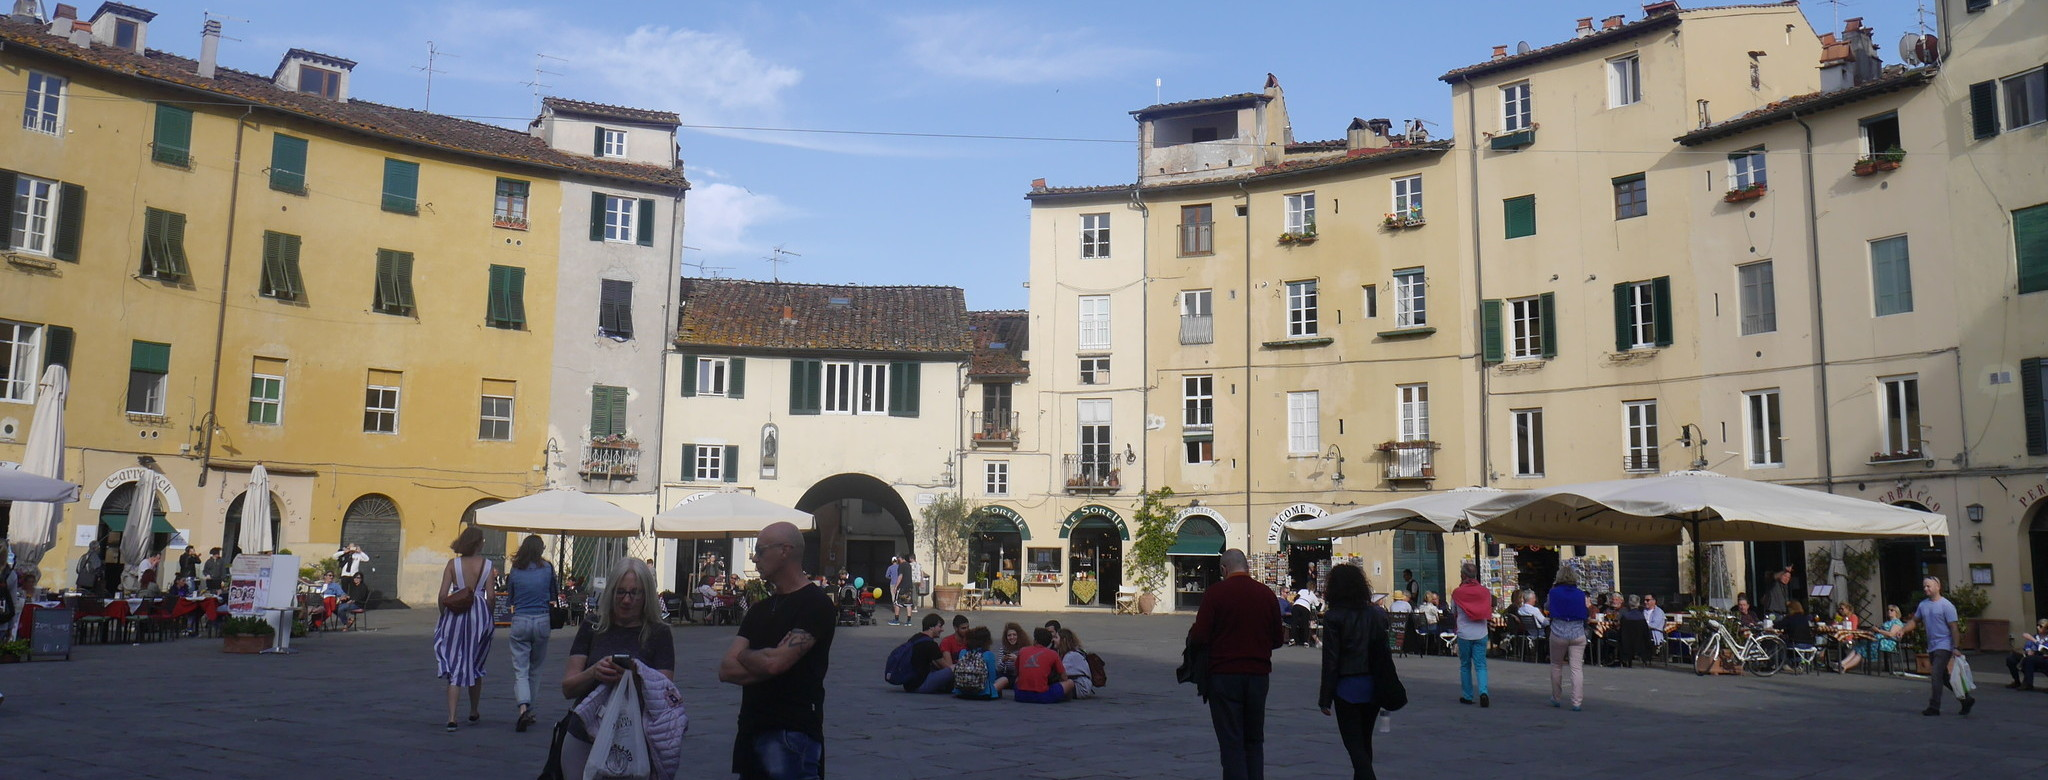 Anyone who wants to can visit Lucca. We'll show you all the sights.